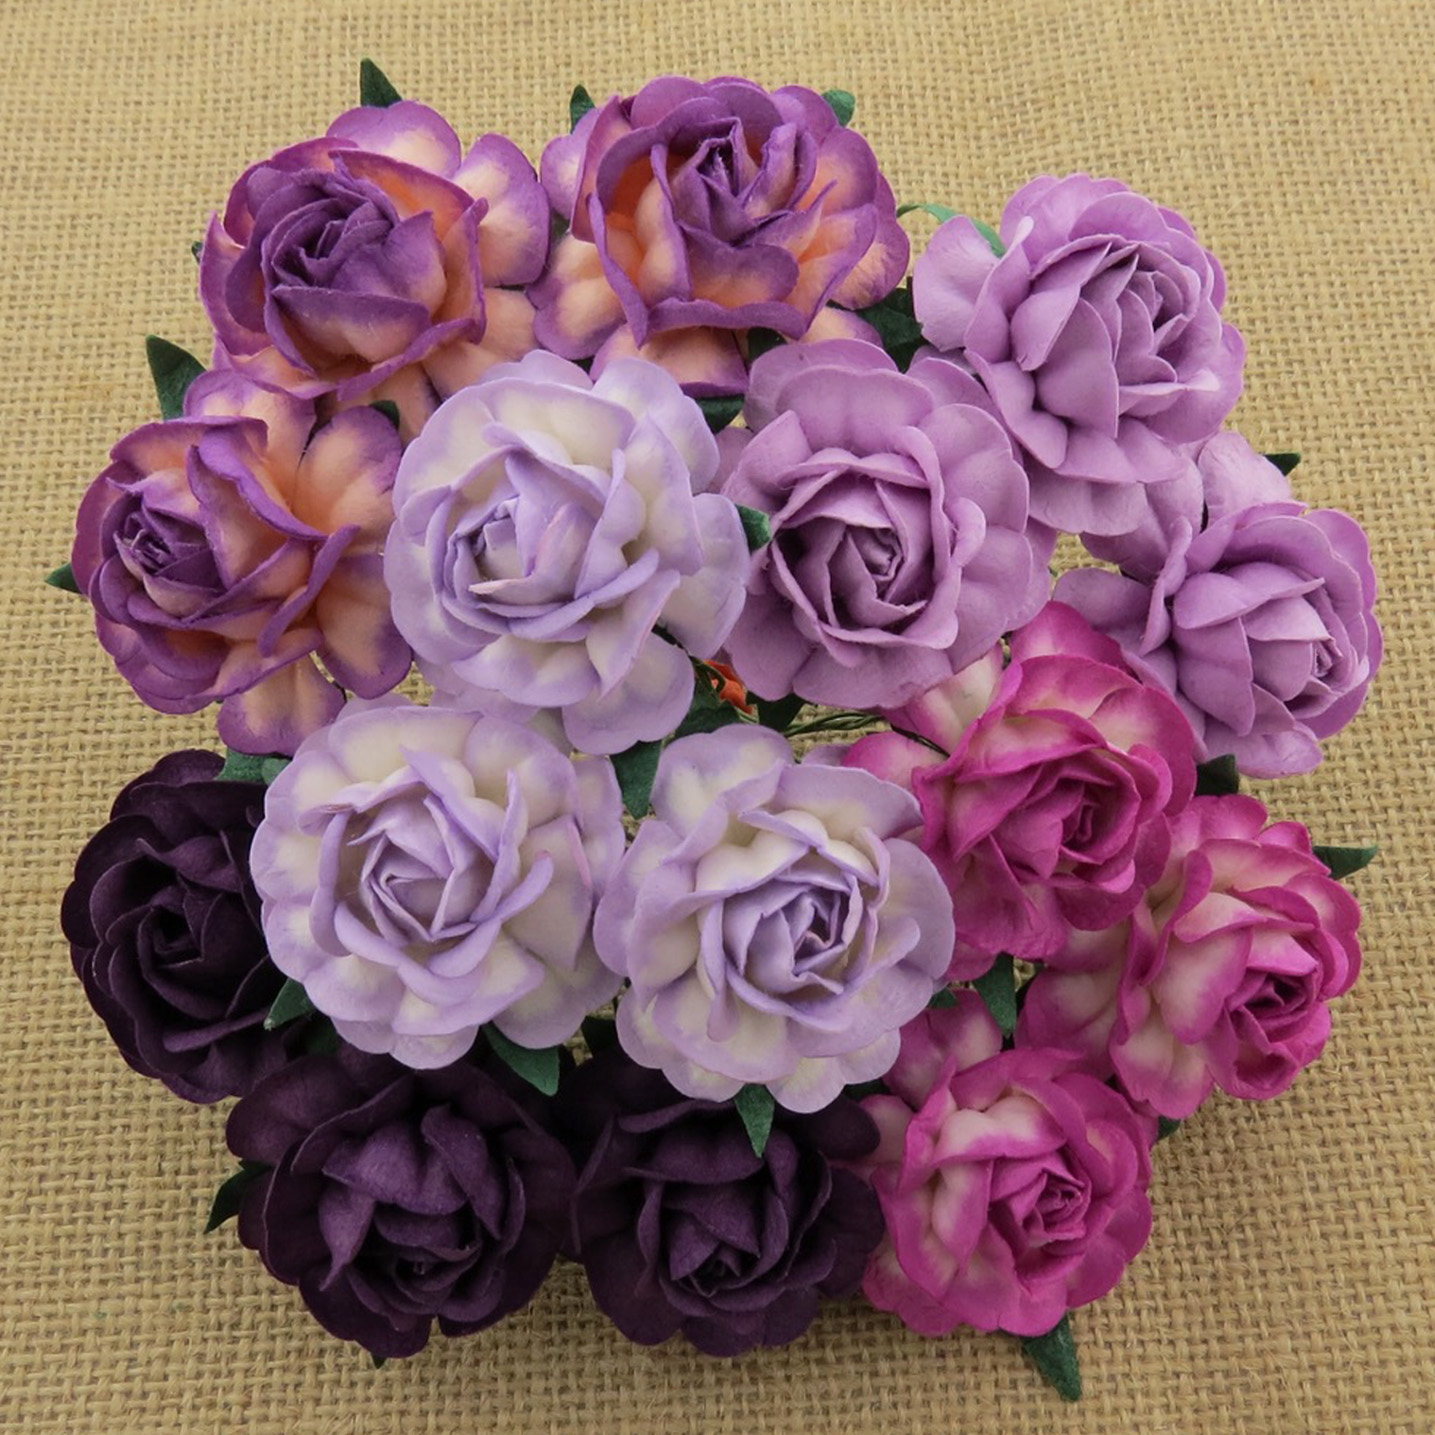 50 MIXED PURPLE/LILAC MULBERRY PAPER TEA ROSES 40mm - 5 COLOR